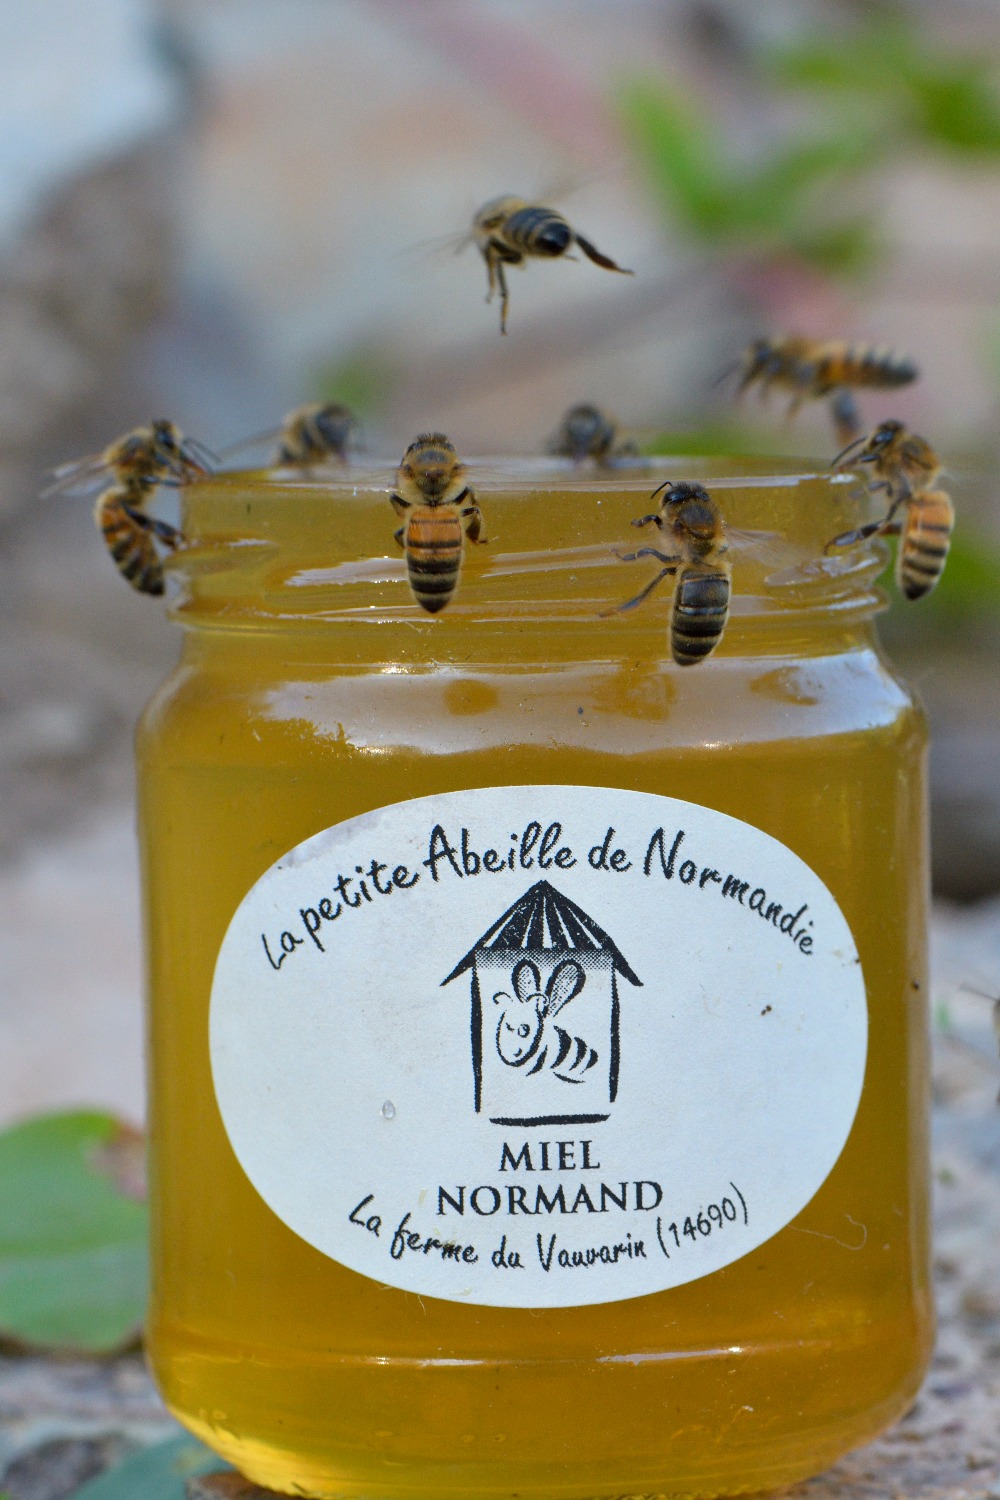 pot miel abeilles 45 vauvarin_edited